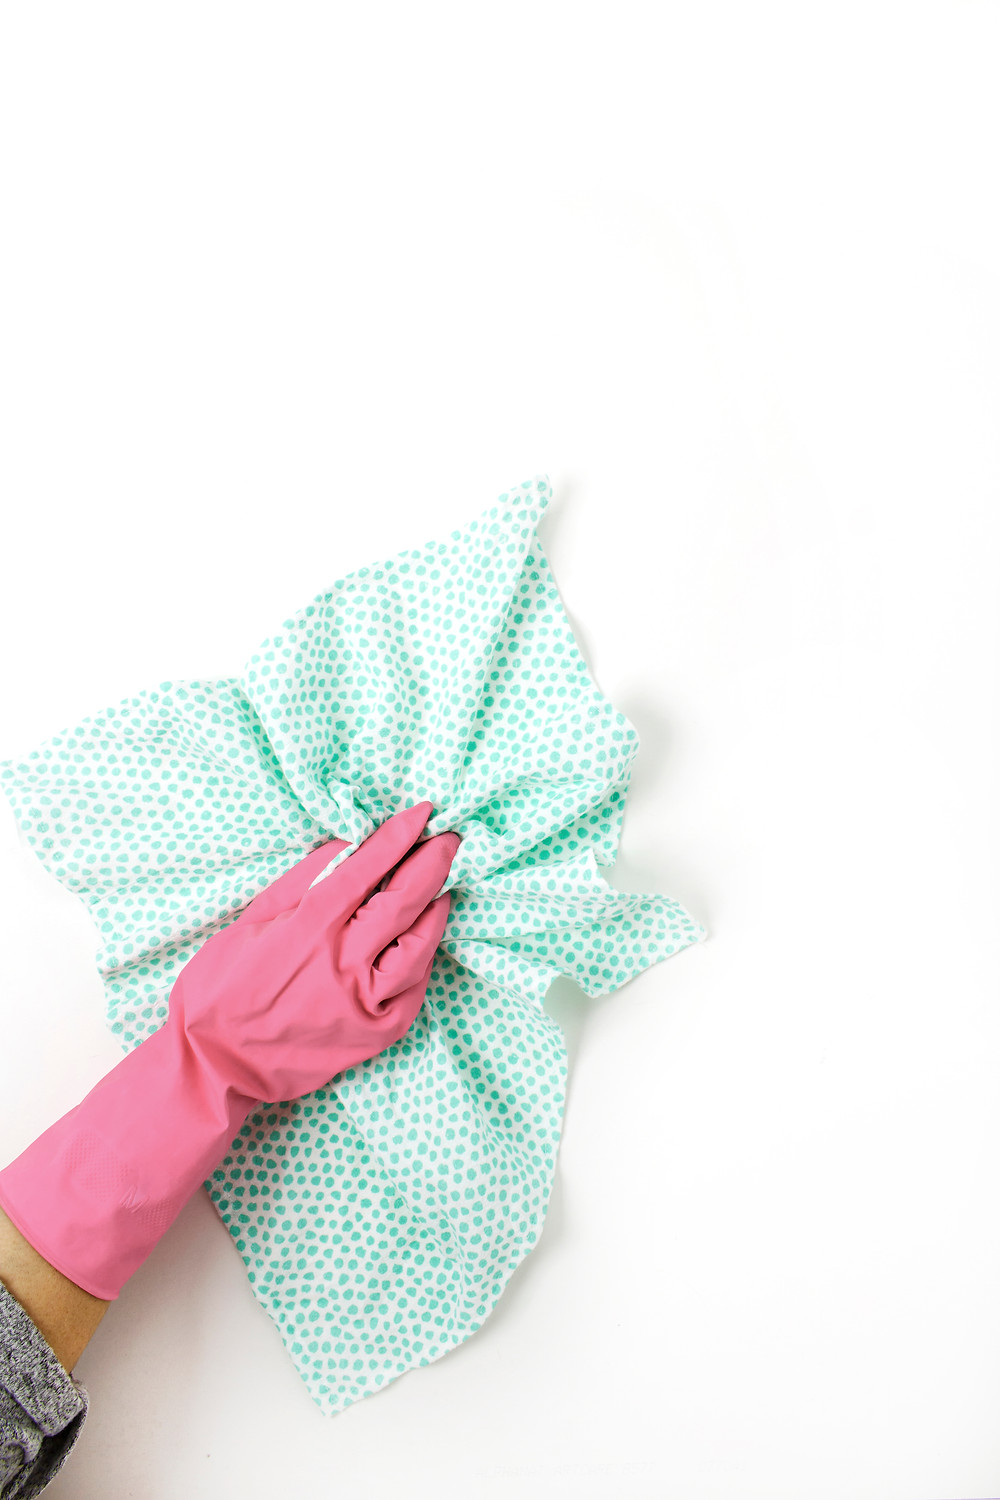 a gloved hand using a cleaning rag